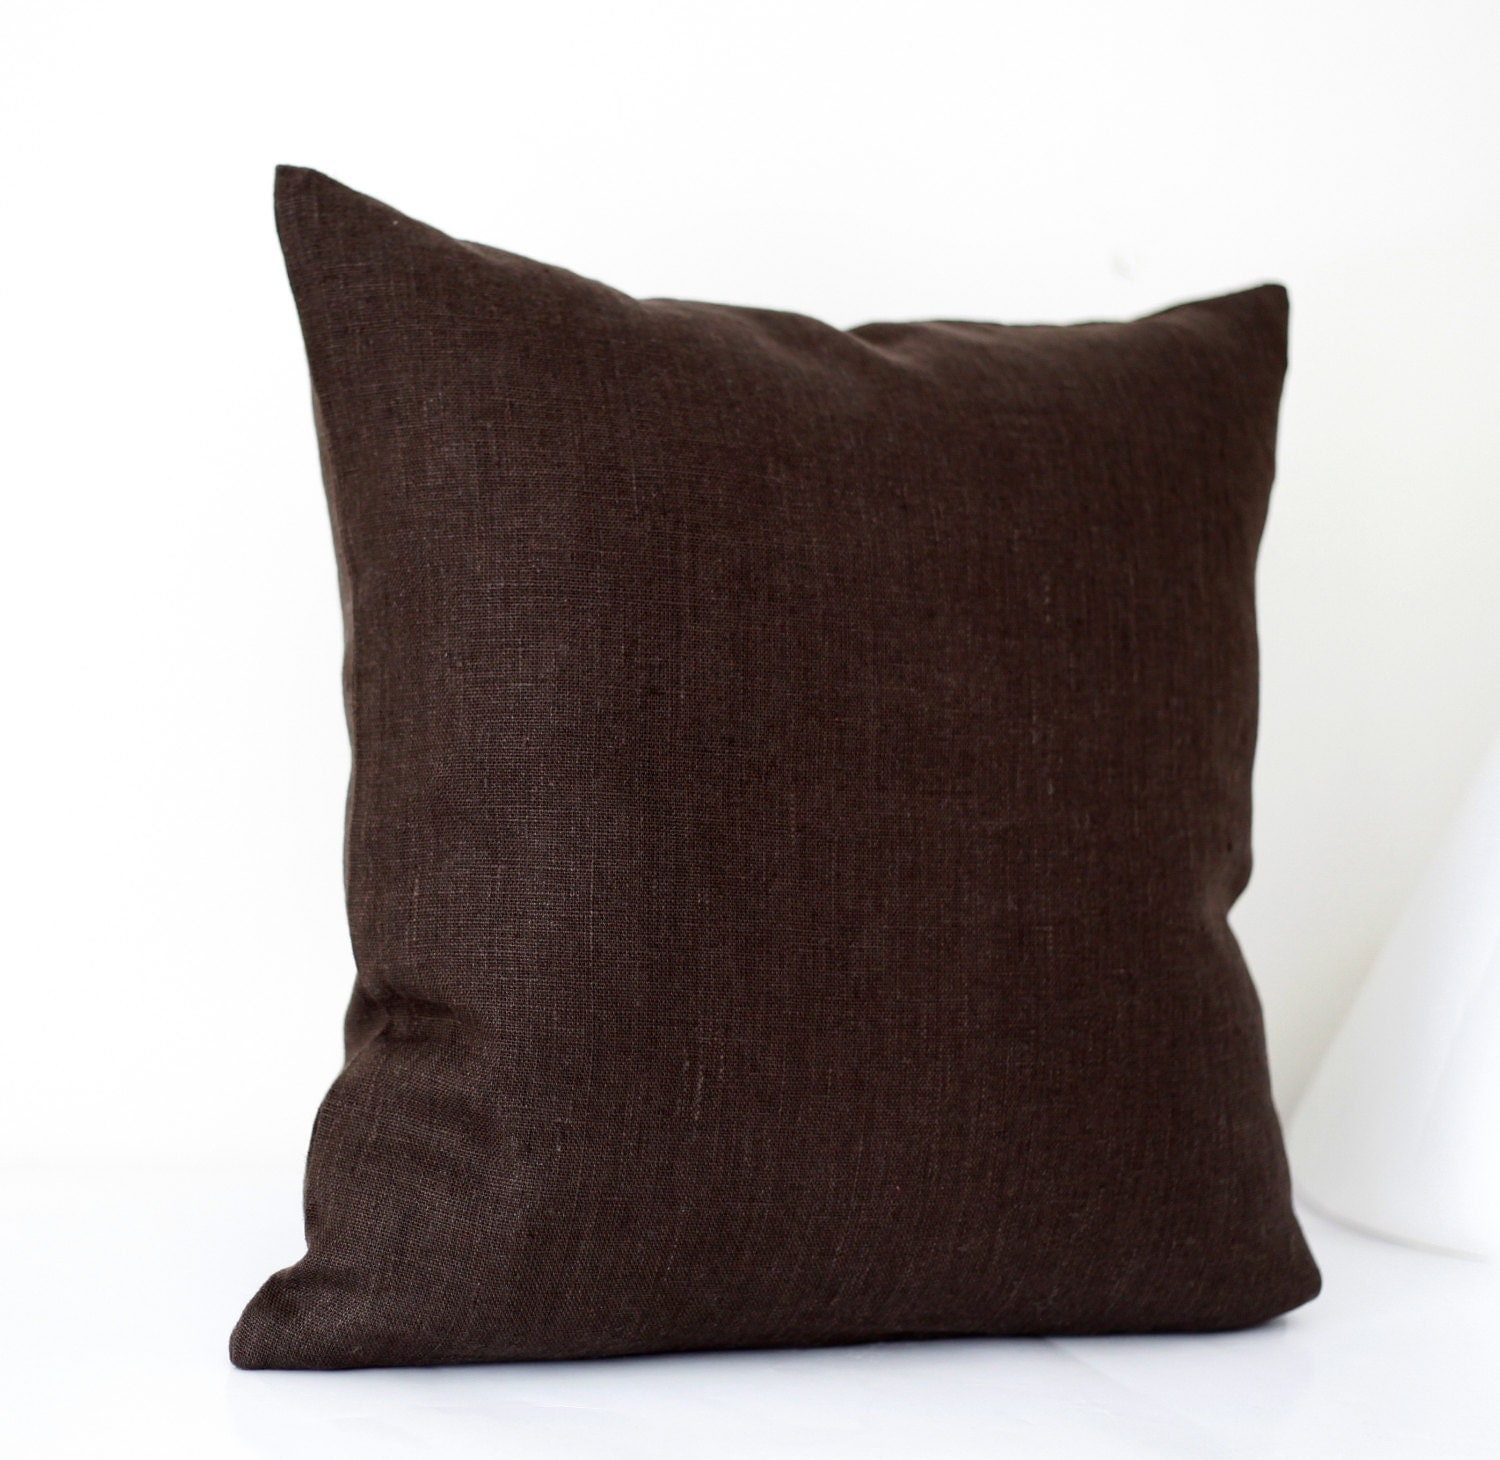 Linen sham chocolate brown throw pillows pillow by pillowlink